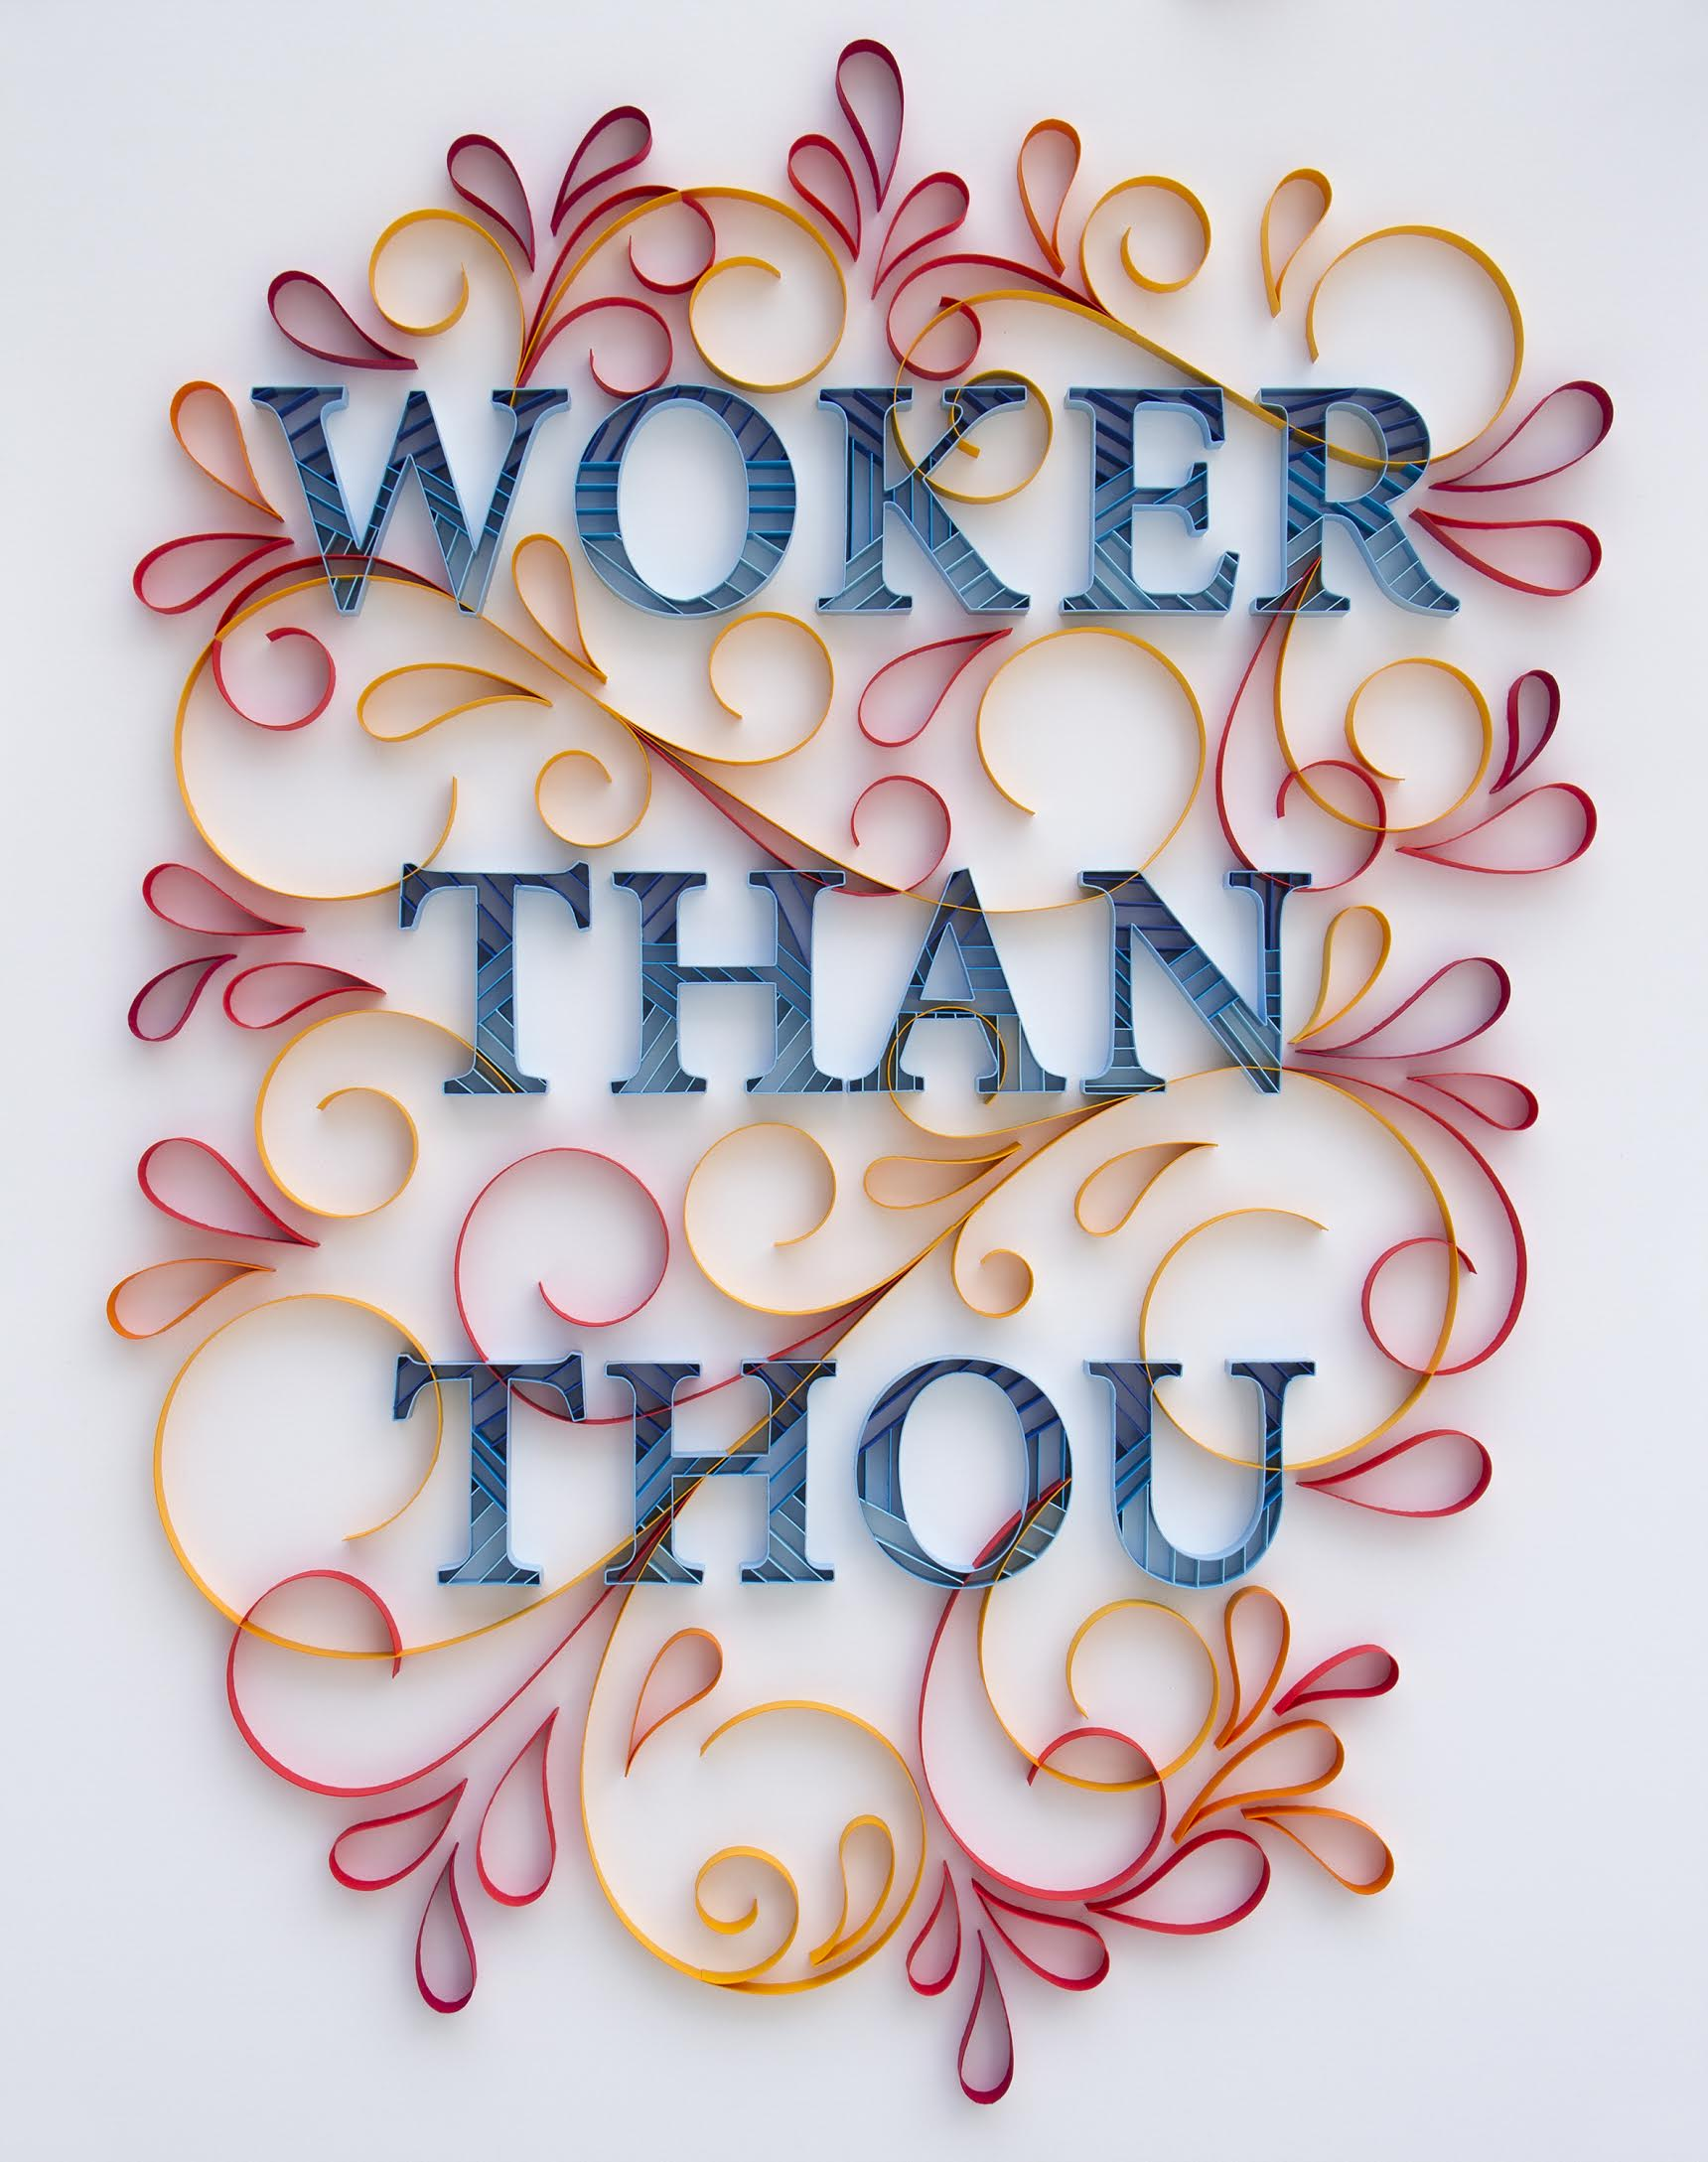 "SOLD! Woker Than Though, Framed, Cut Paper 24"" x 30""  $5,000"